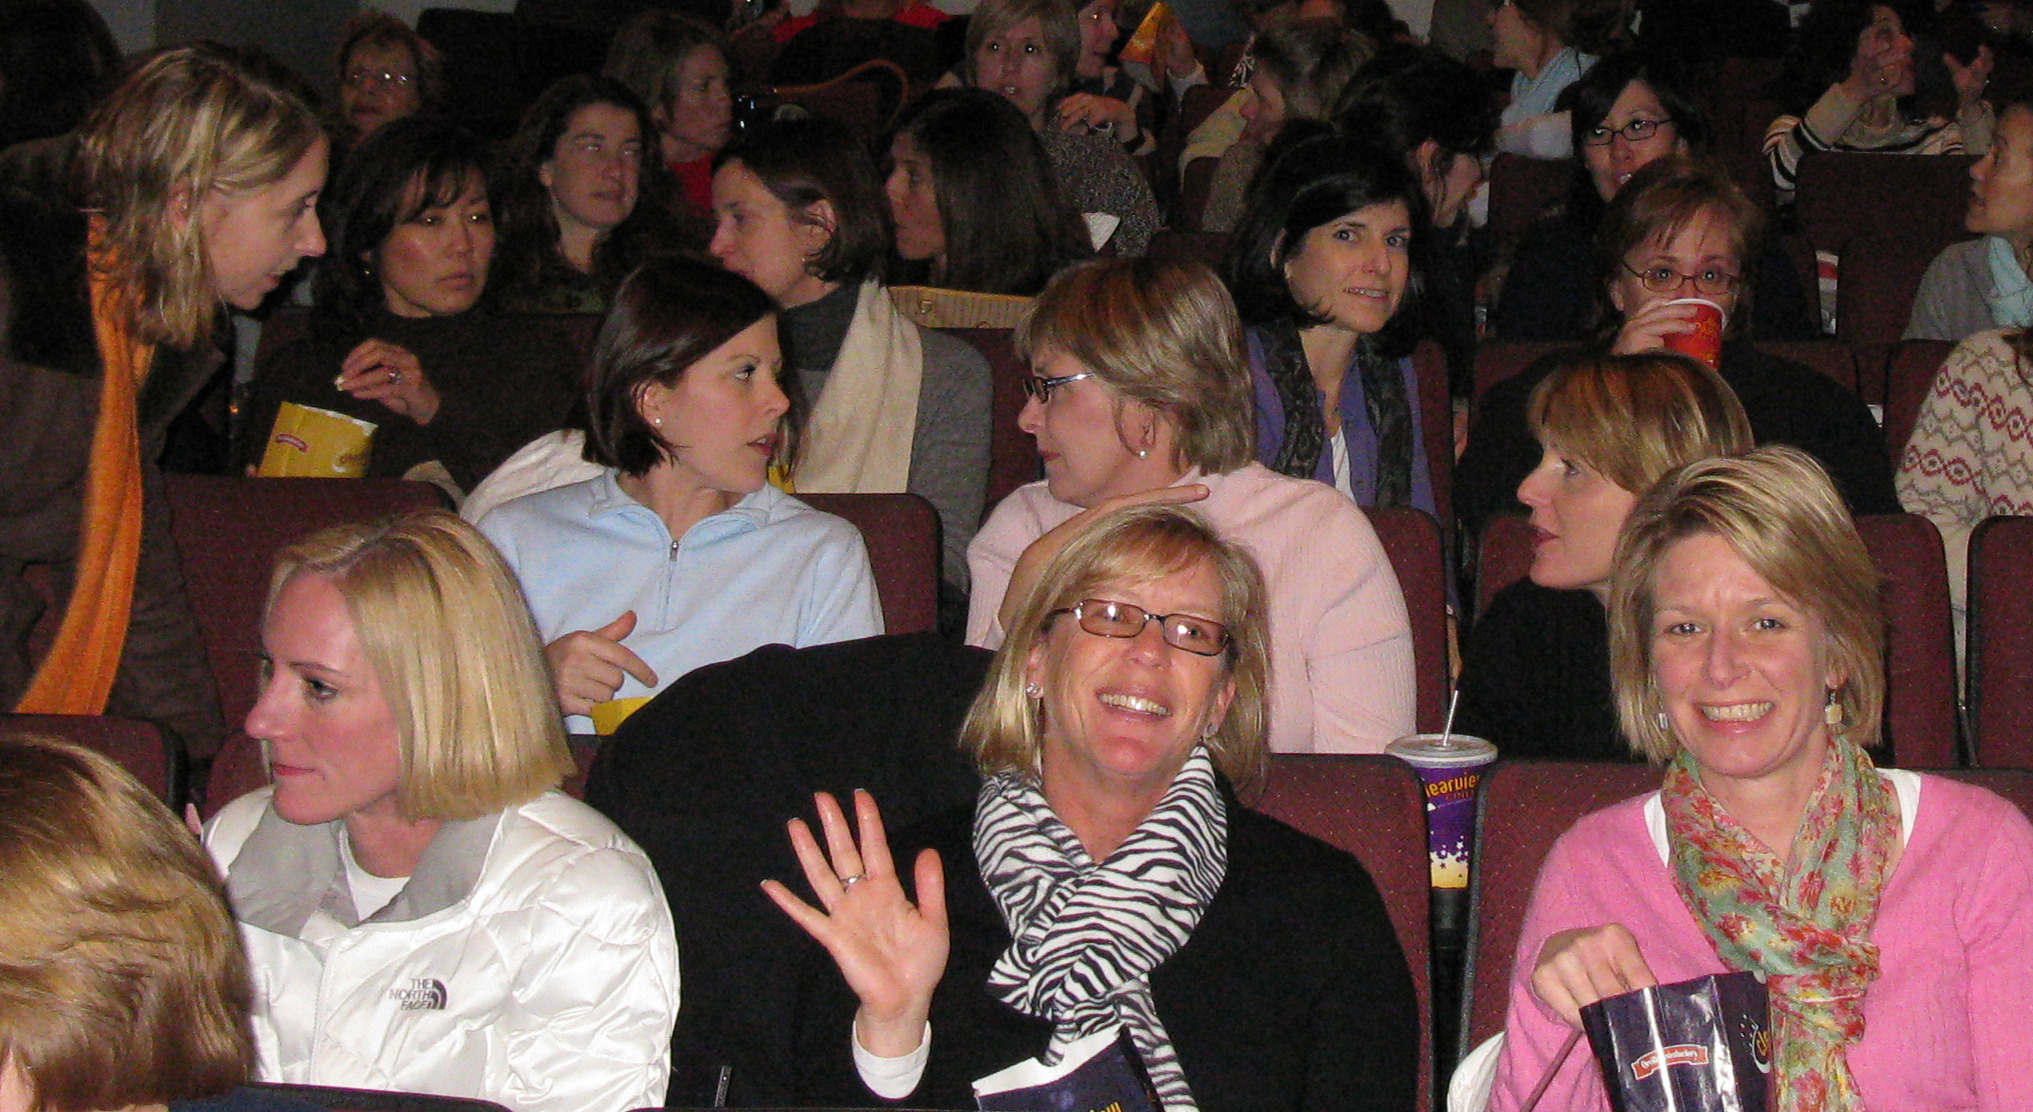 afc350c886d3d208156c_matinee_club_group_in_theater.jpg